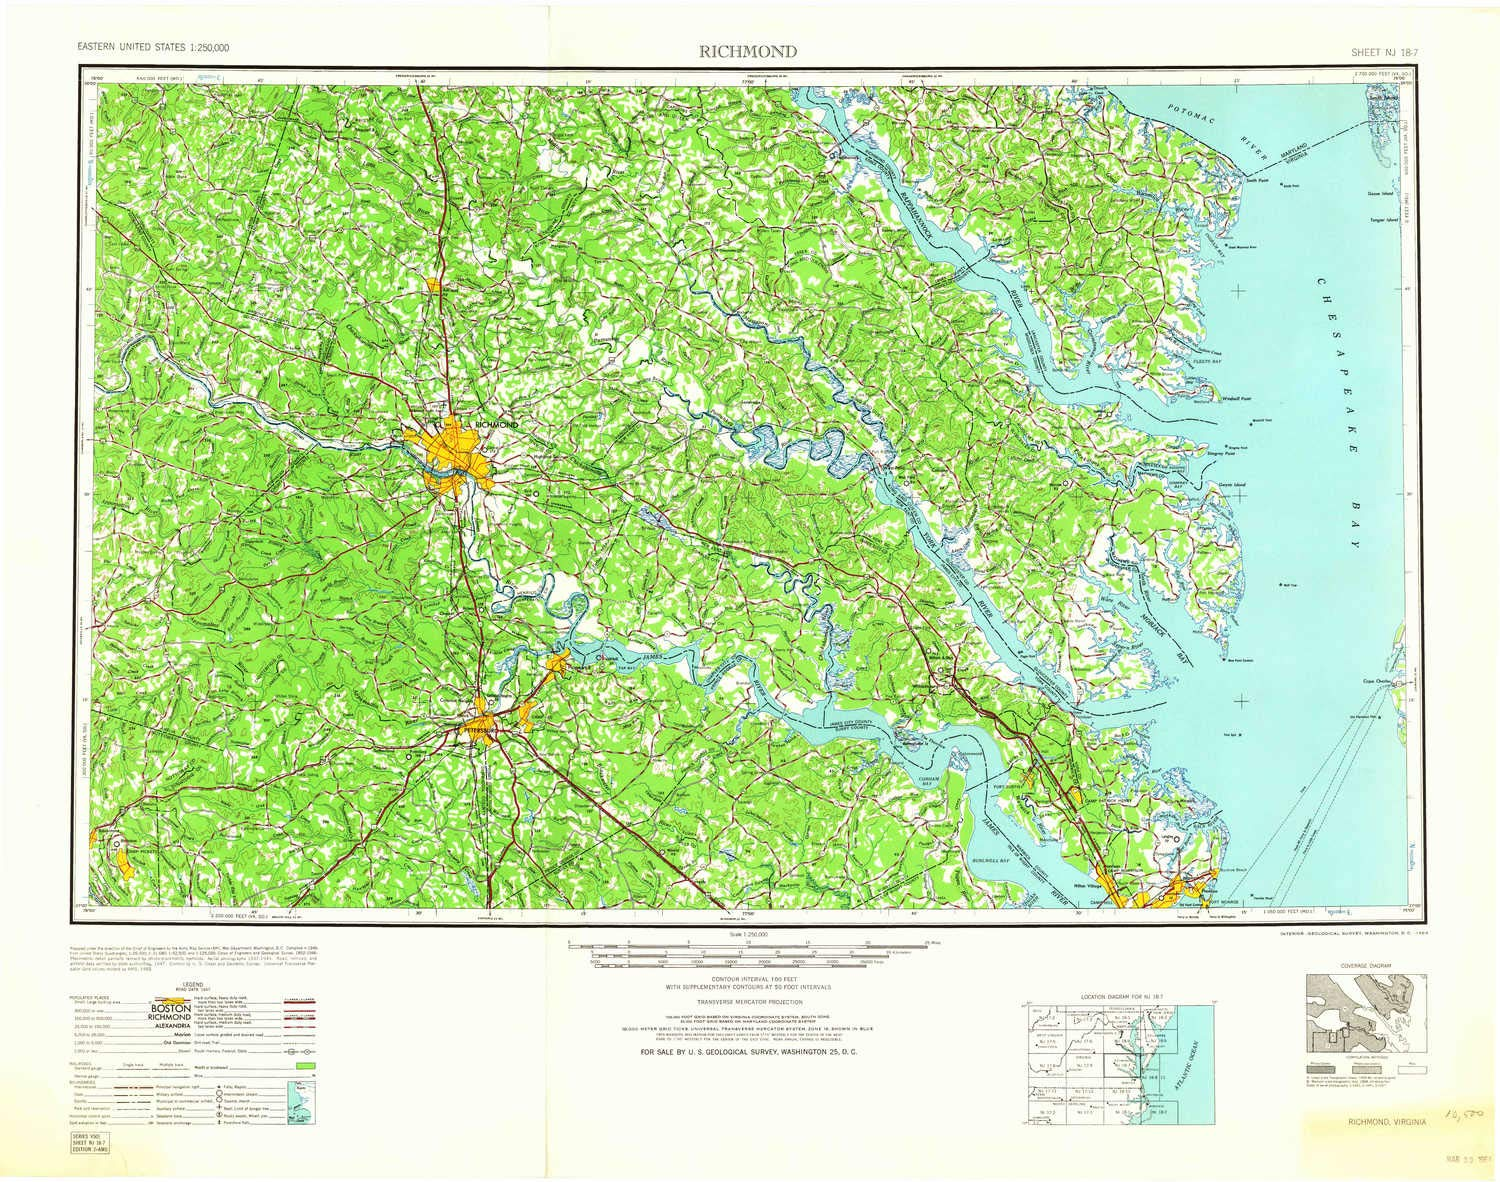 Amazoncom Yellowmaps Richmond Va Topo Map 1250000 Scale 1 X 2 - Richmond-virginia-on-us-map